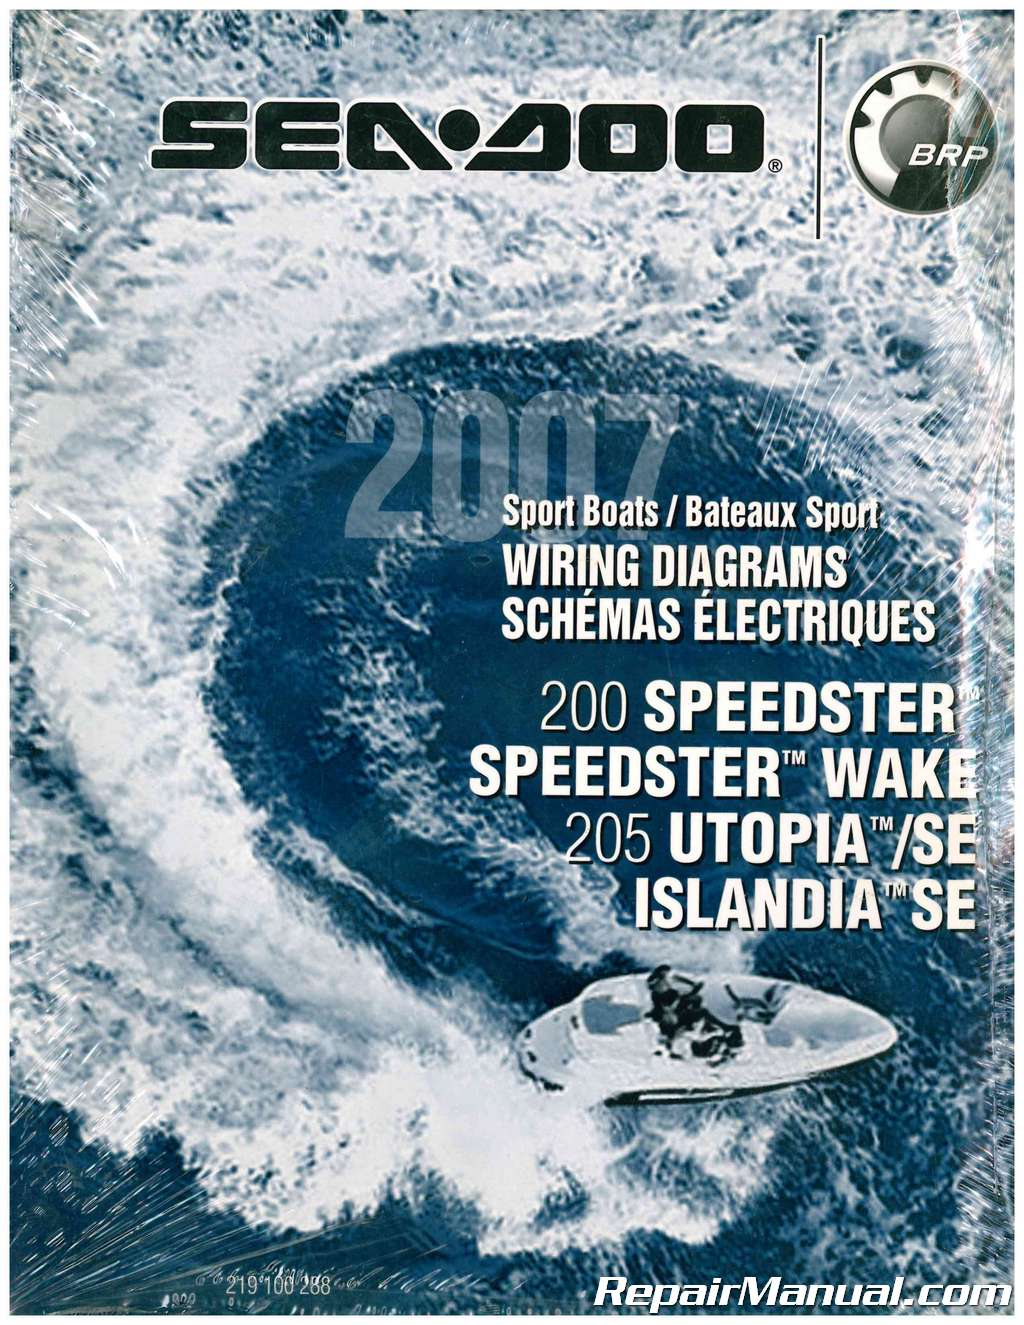 2007 Sea Doo Boat Wiring Diagram 200 Speedster Wake 205 Marine Diagrams Utopia Se Islandia